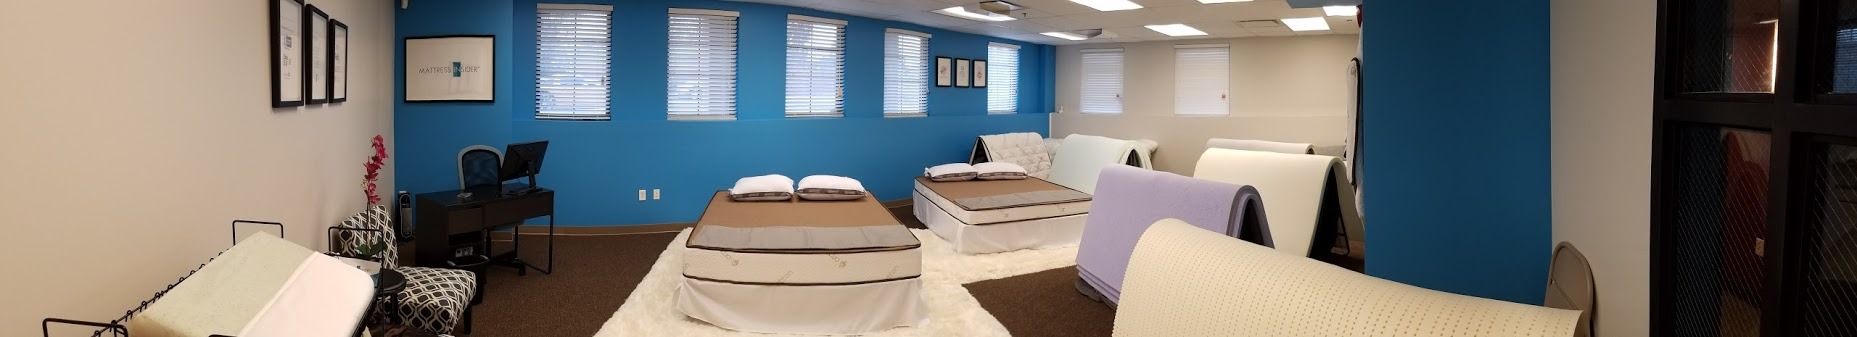 Mattress Showroom Colorado